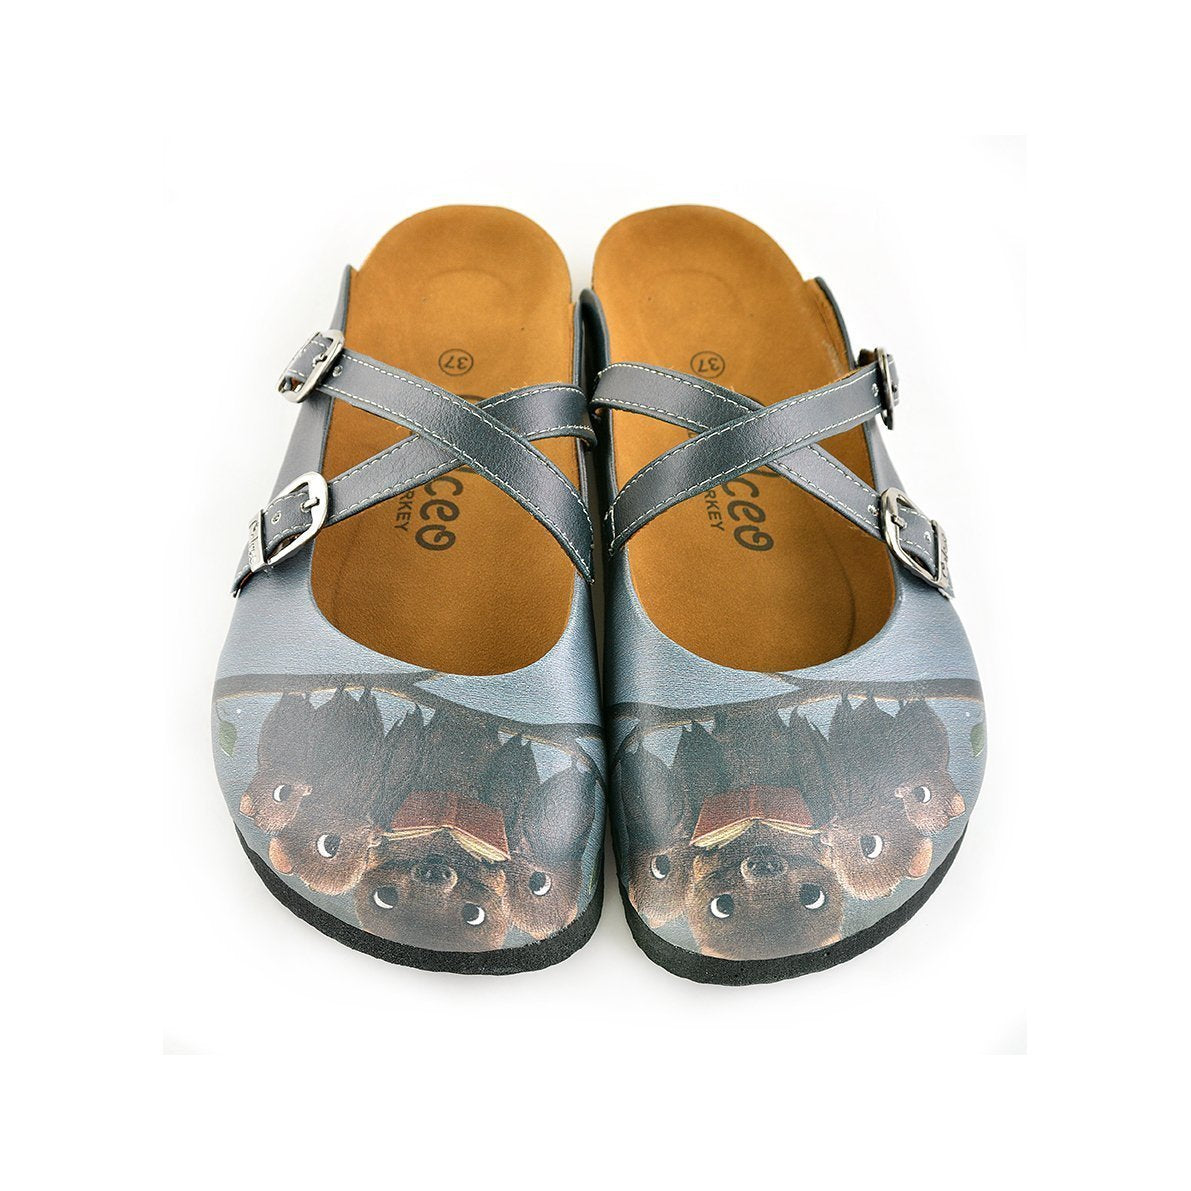 Brown Bat Clogs WCAL142, Goby, CALCEO Clogs